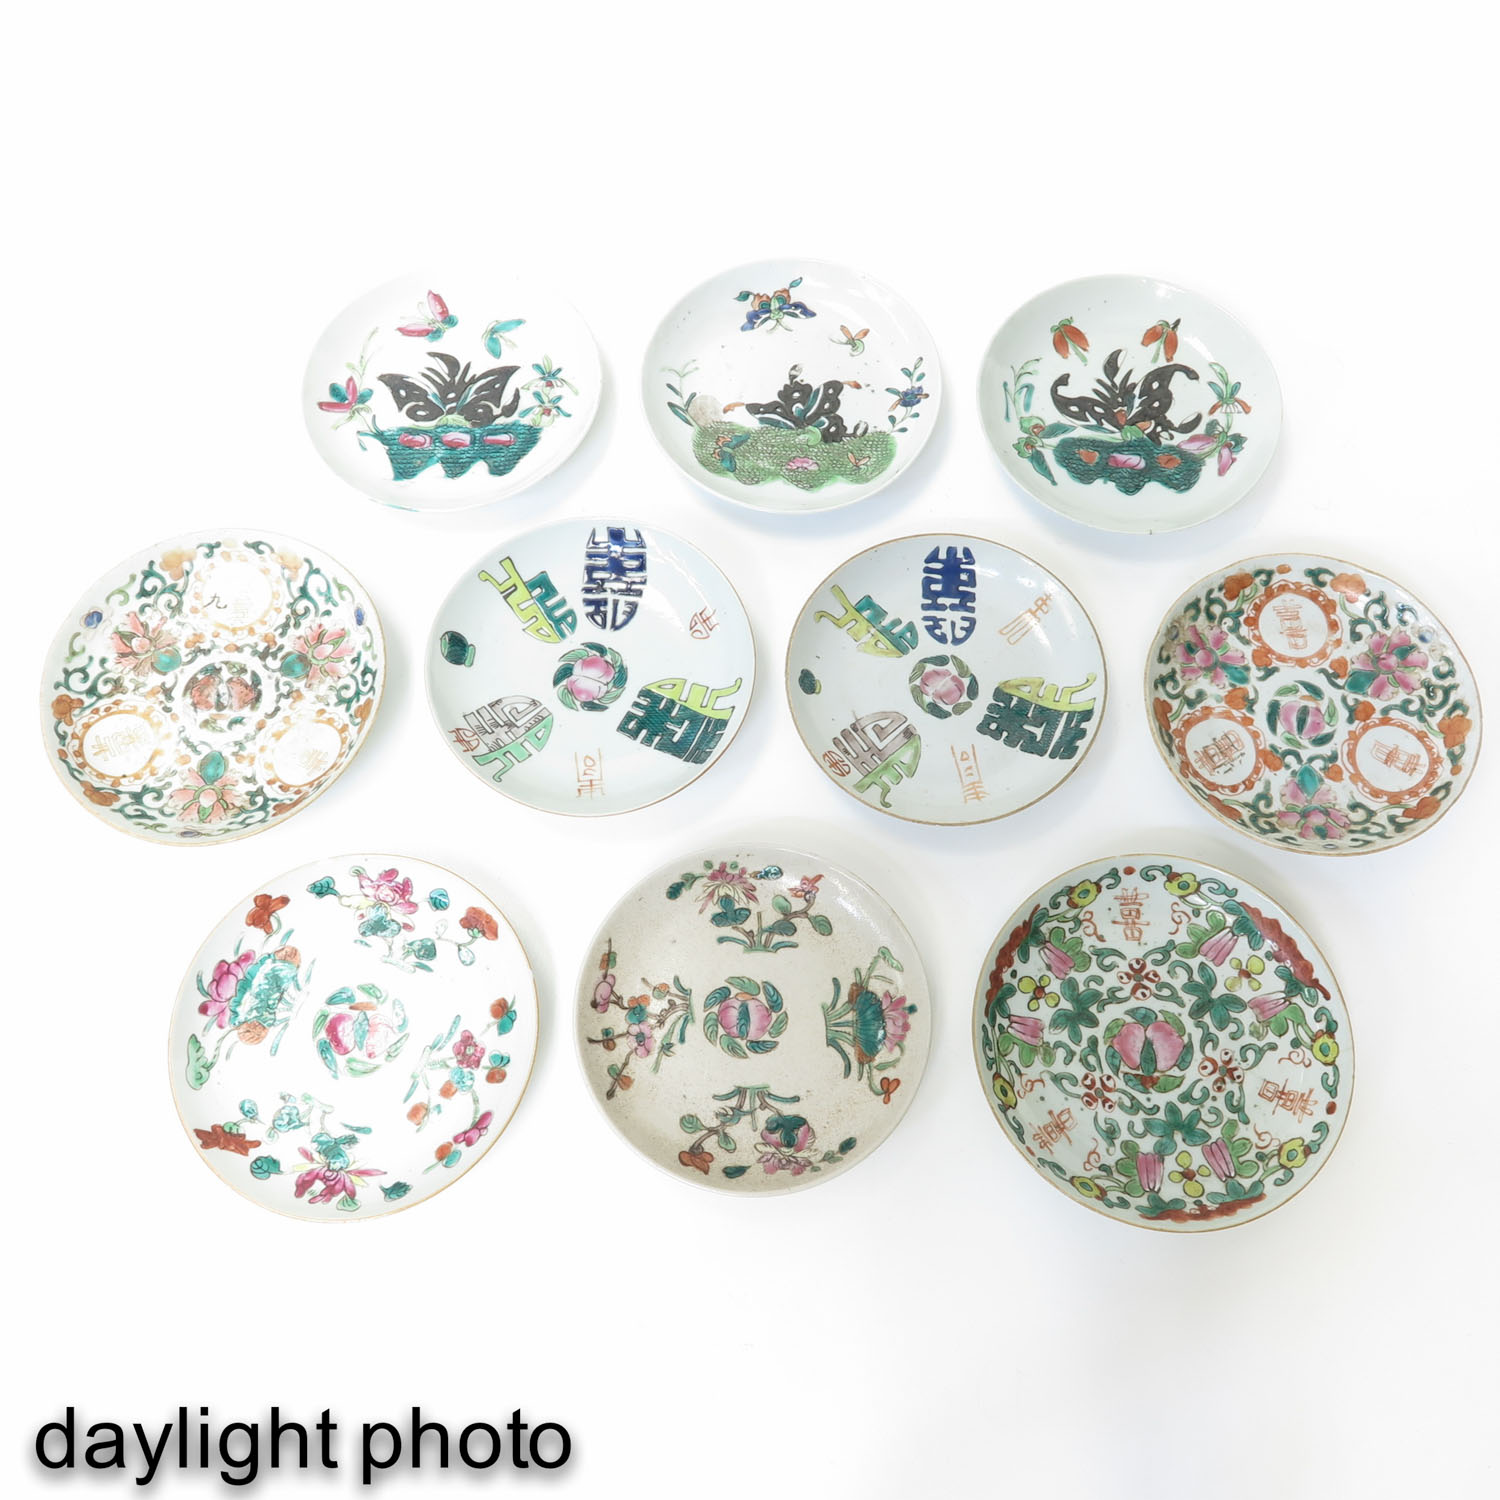 A Collection of 10 Polychrome Decor Plates - Image 9 of 10